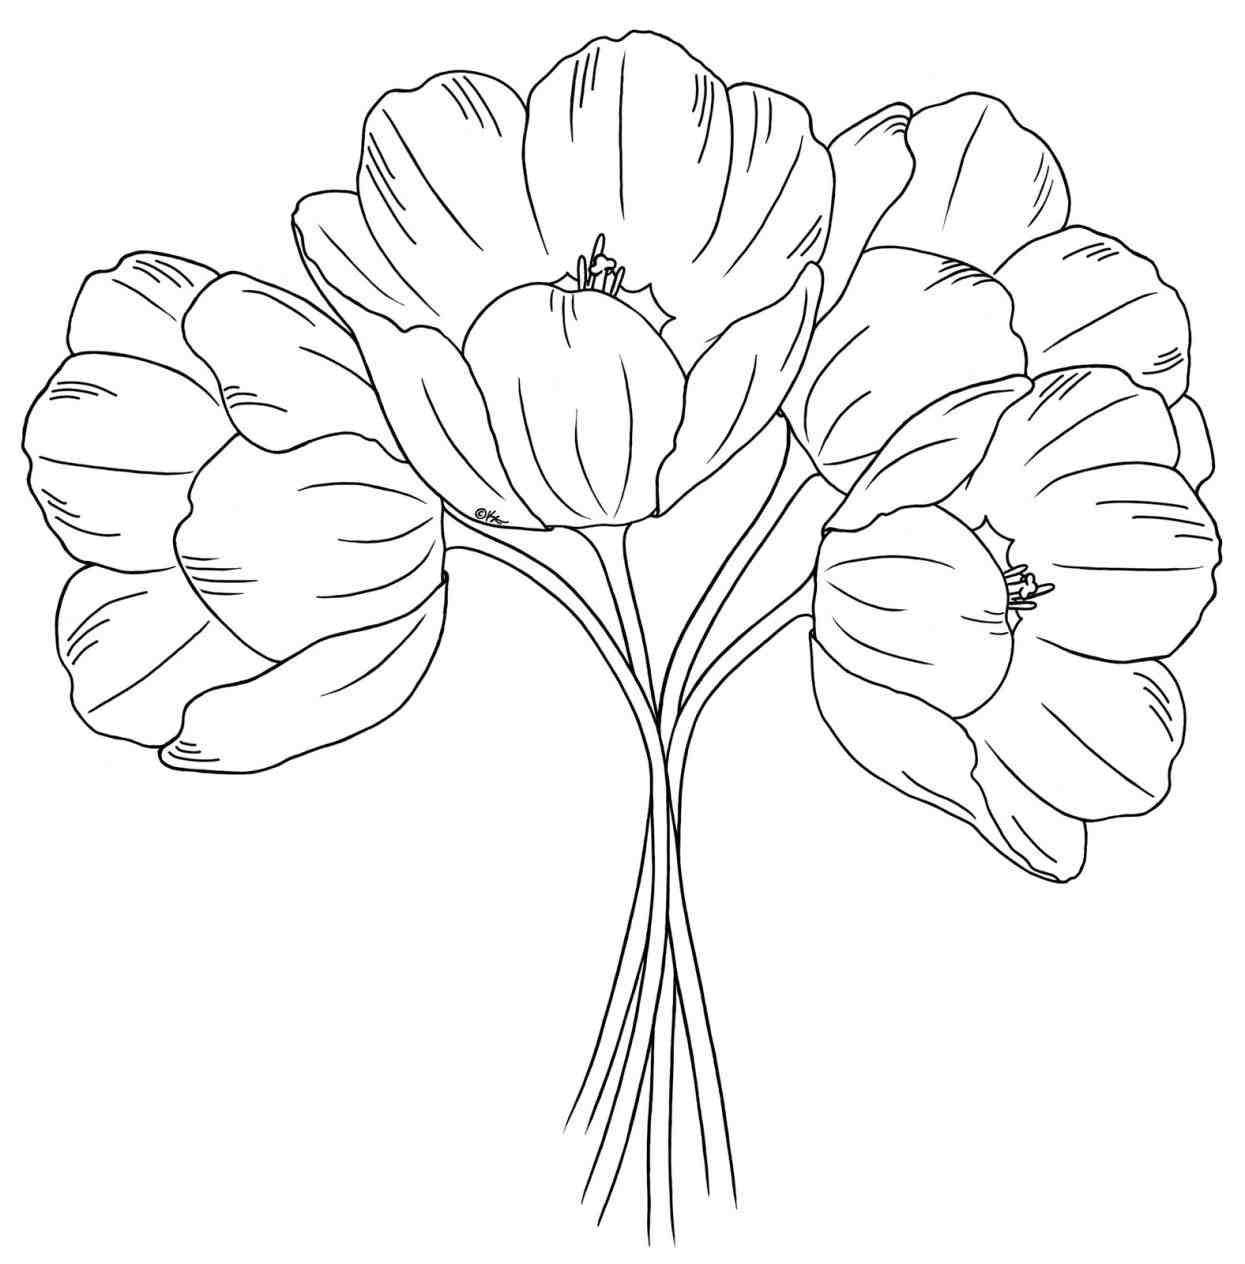 tulip drawing simple tulips cultivation in netherland coloring page kids play tulip simple drawing